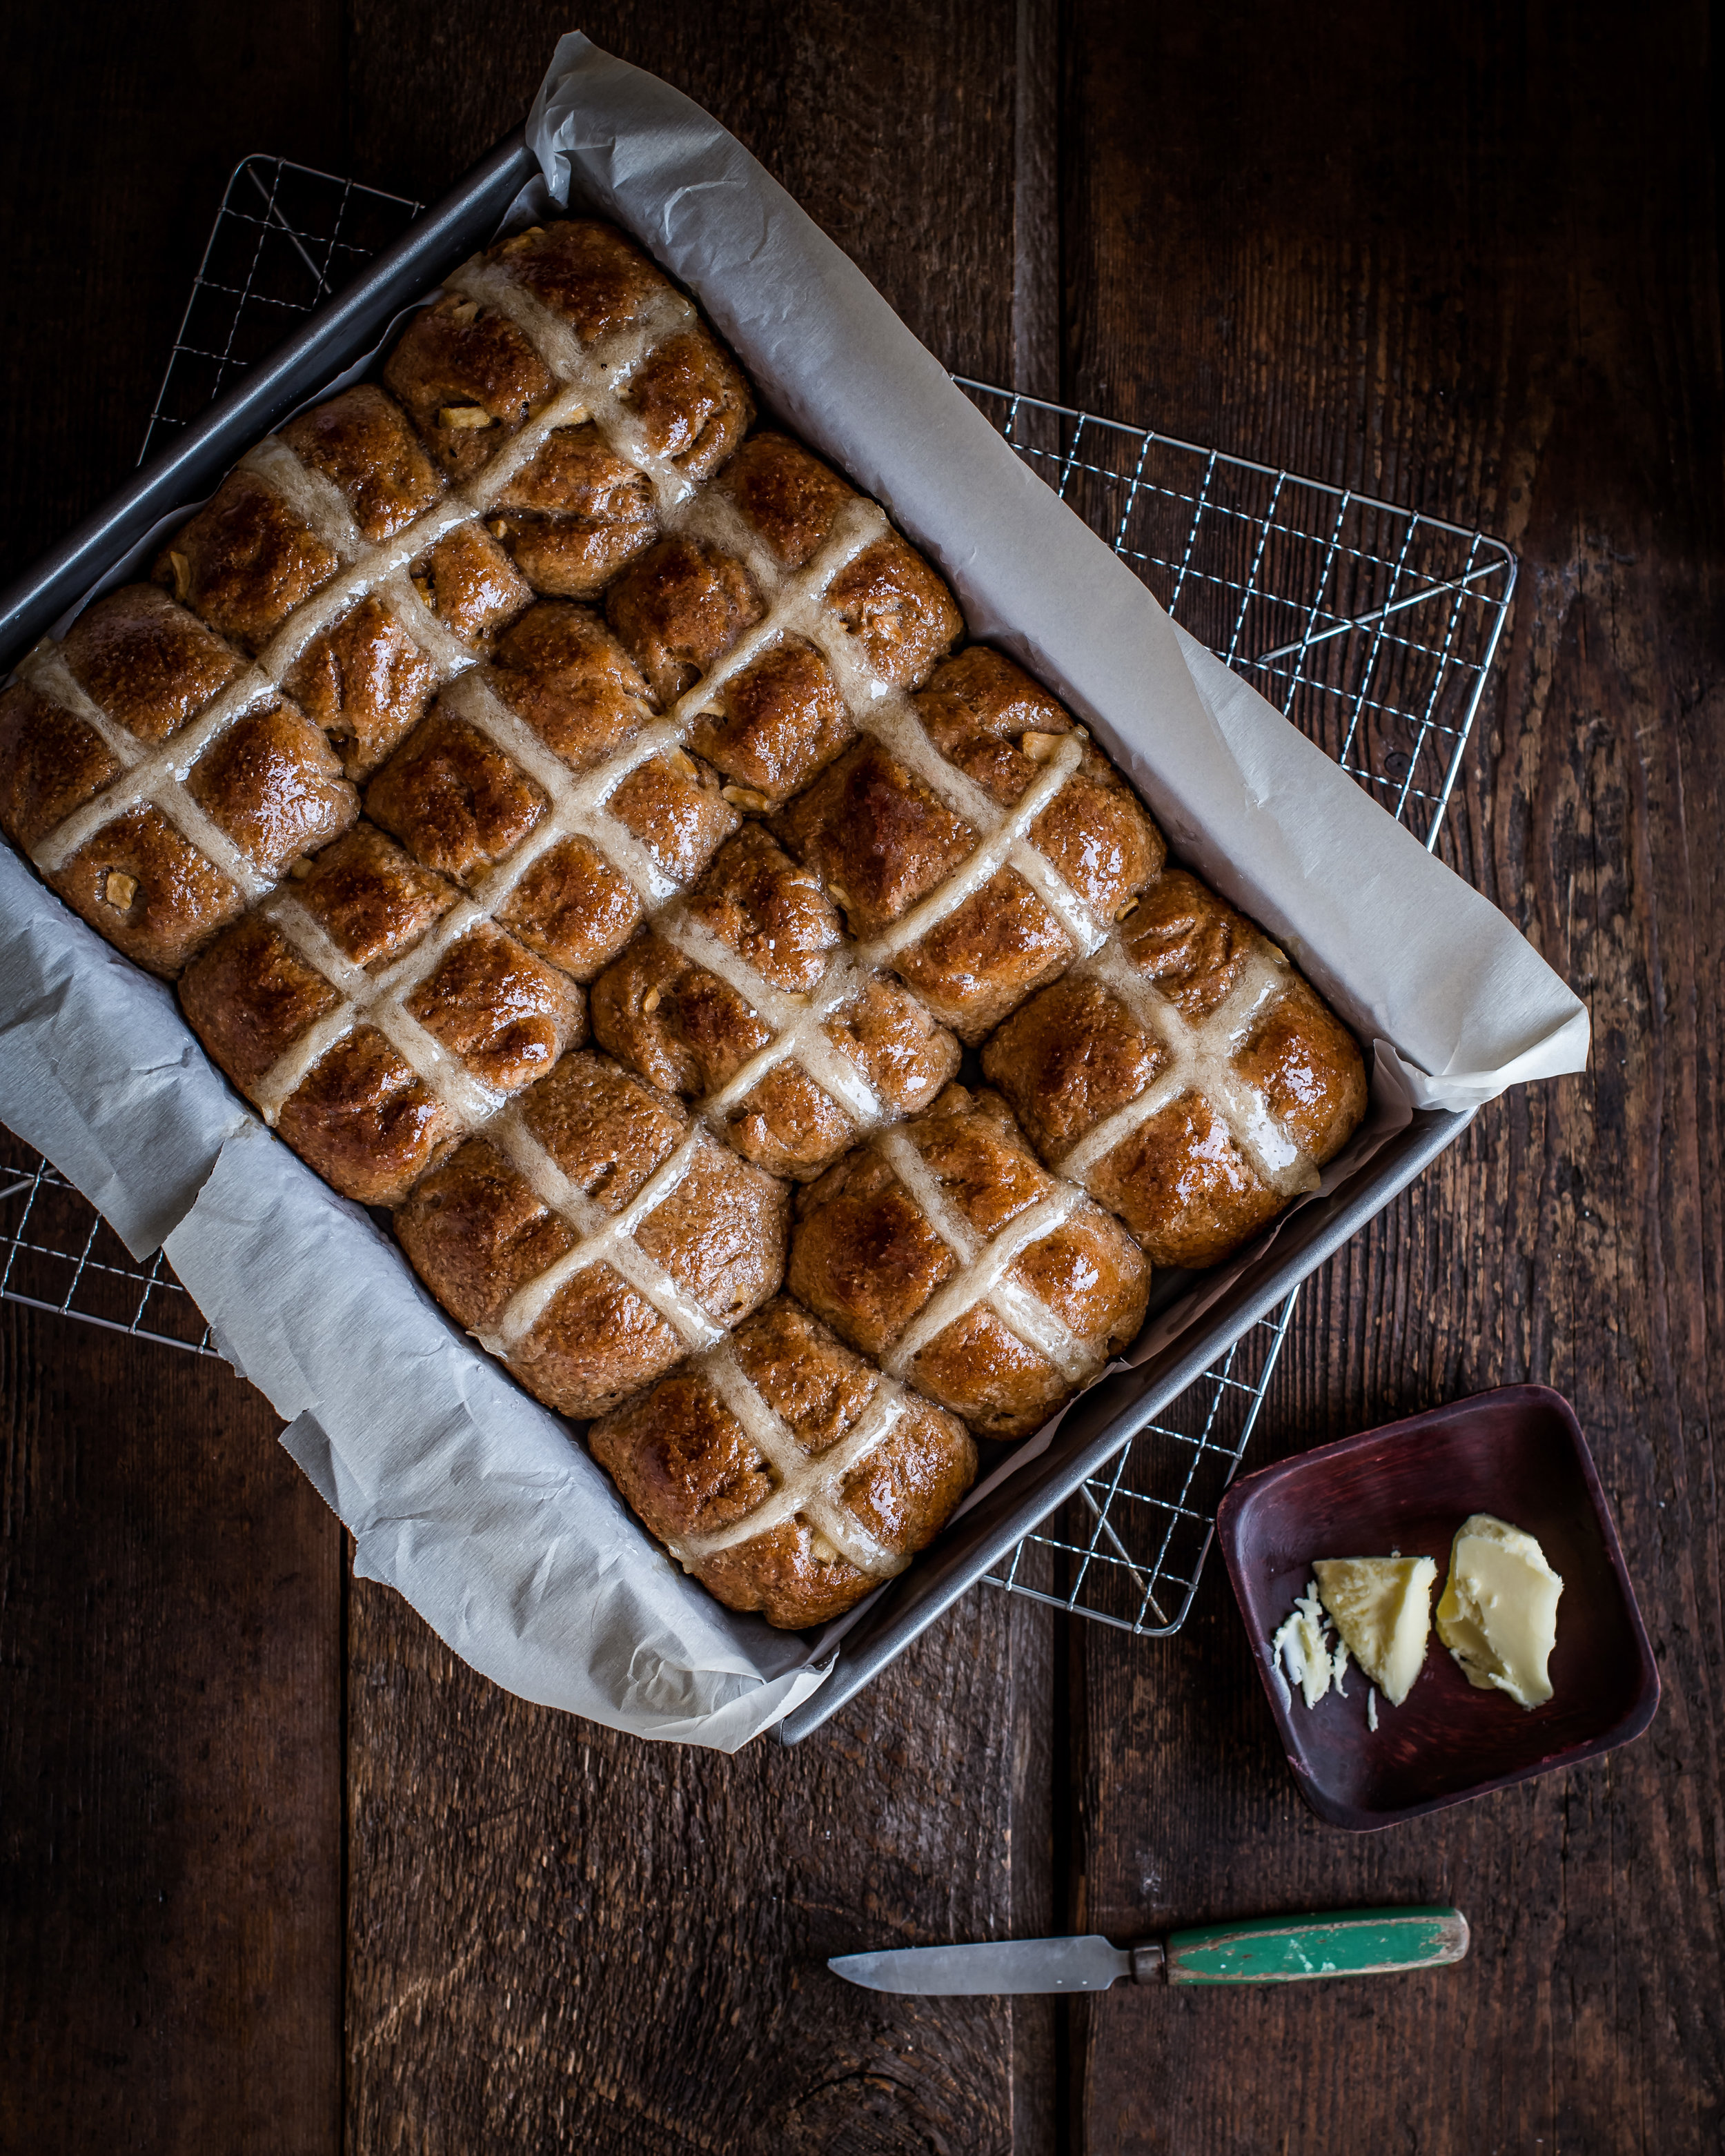 Whole Wheat Apple Cinnamon Hot Cross Buns